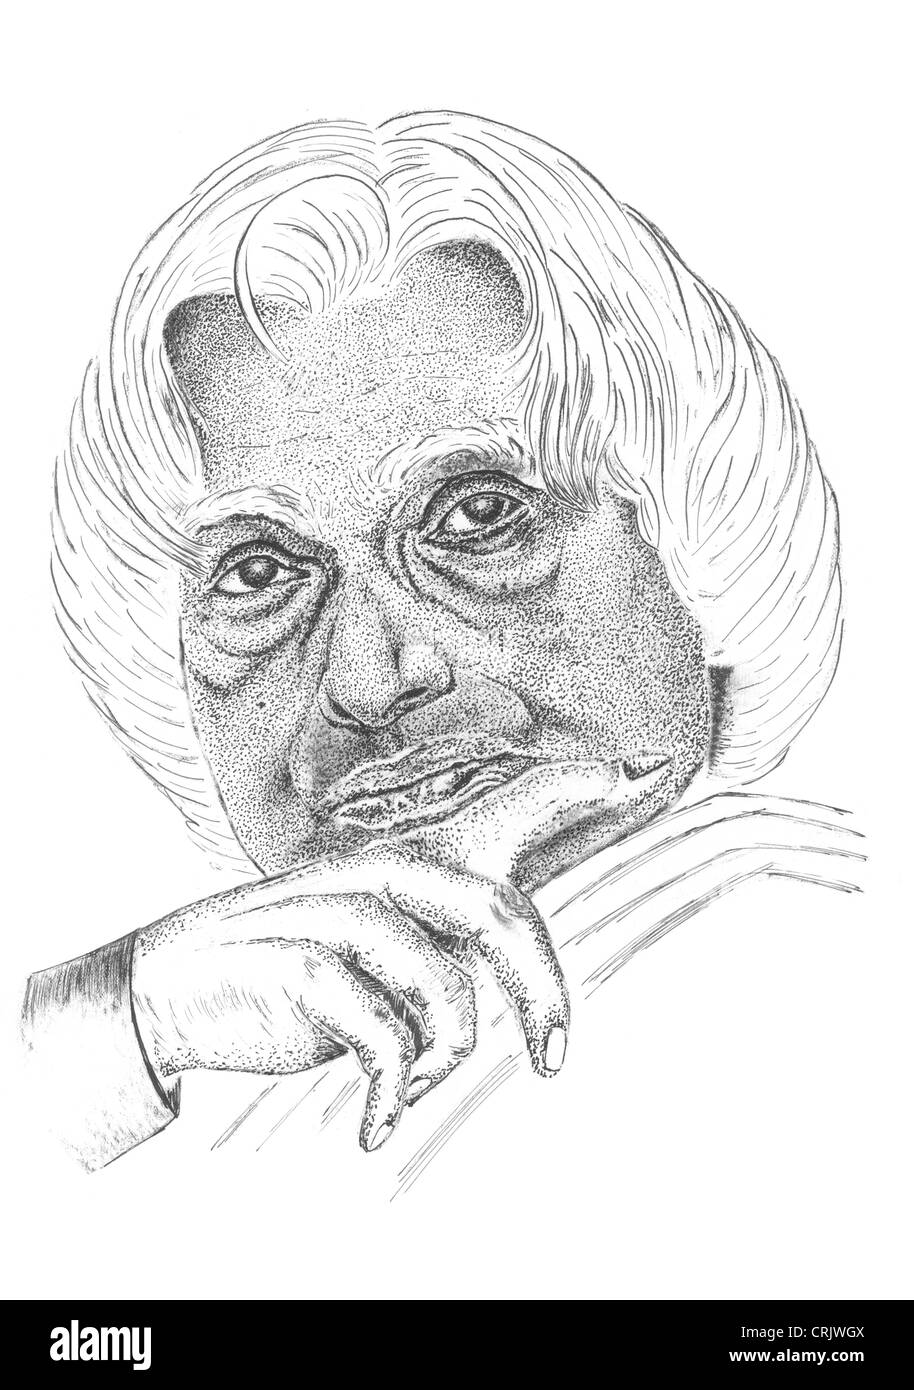 A p j abdul kalam 11th president of india stock image